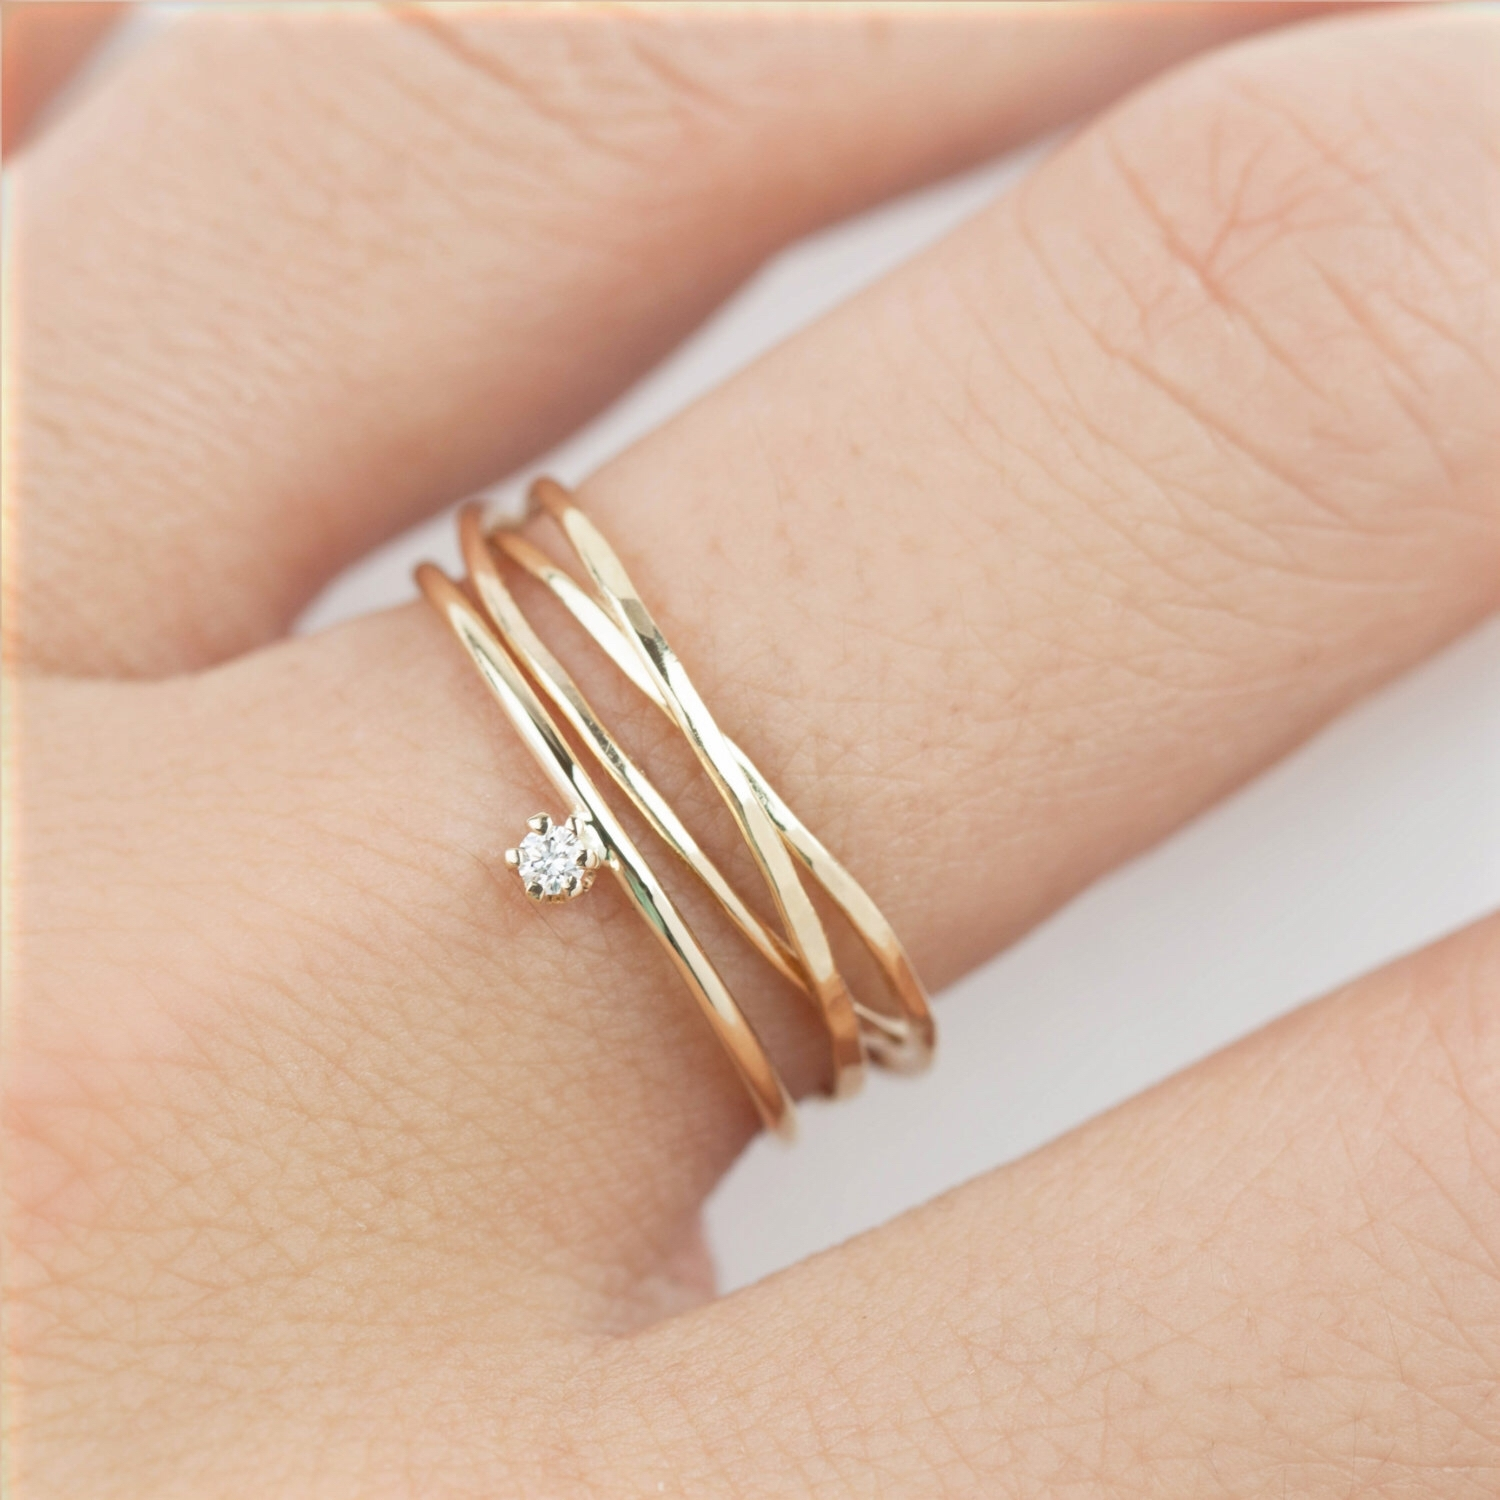 14K Gold Trinity Ring, Dainty Rings, Three Rings, Textured Ring Within 2018 Three Stackable Chevron Diamond Rings (View 1 of 15)